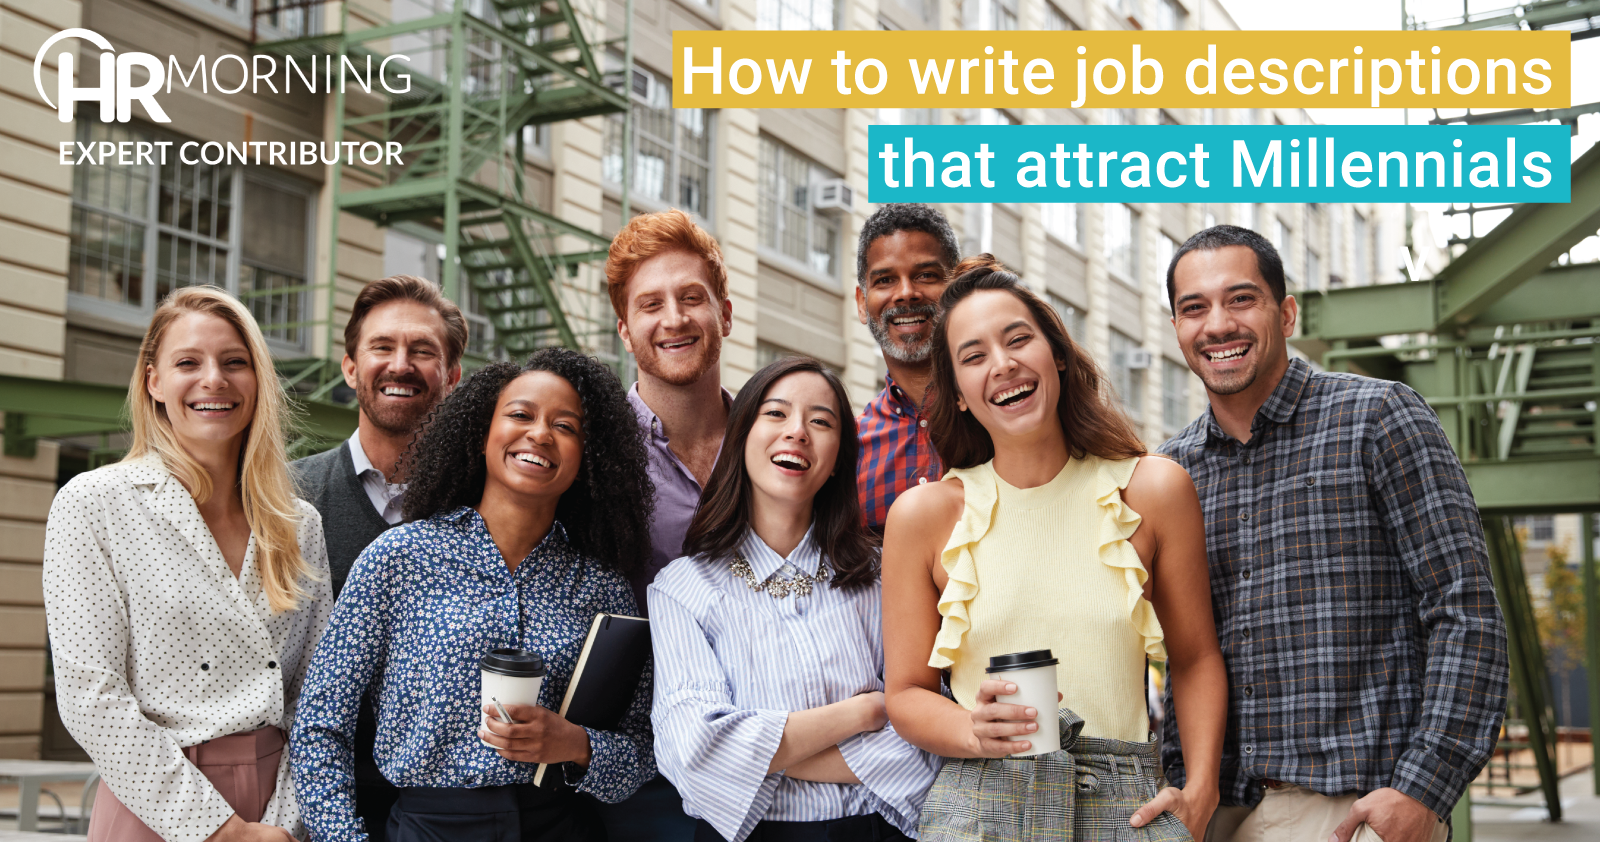 how to write job descriptions that attract millennials